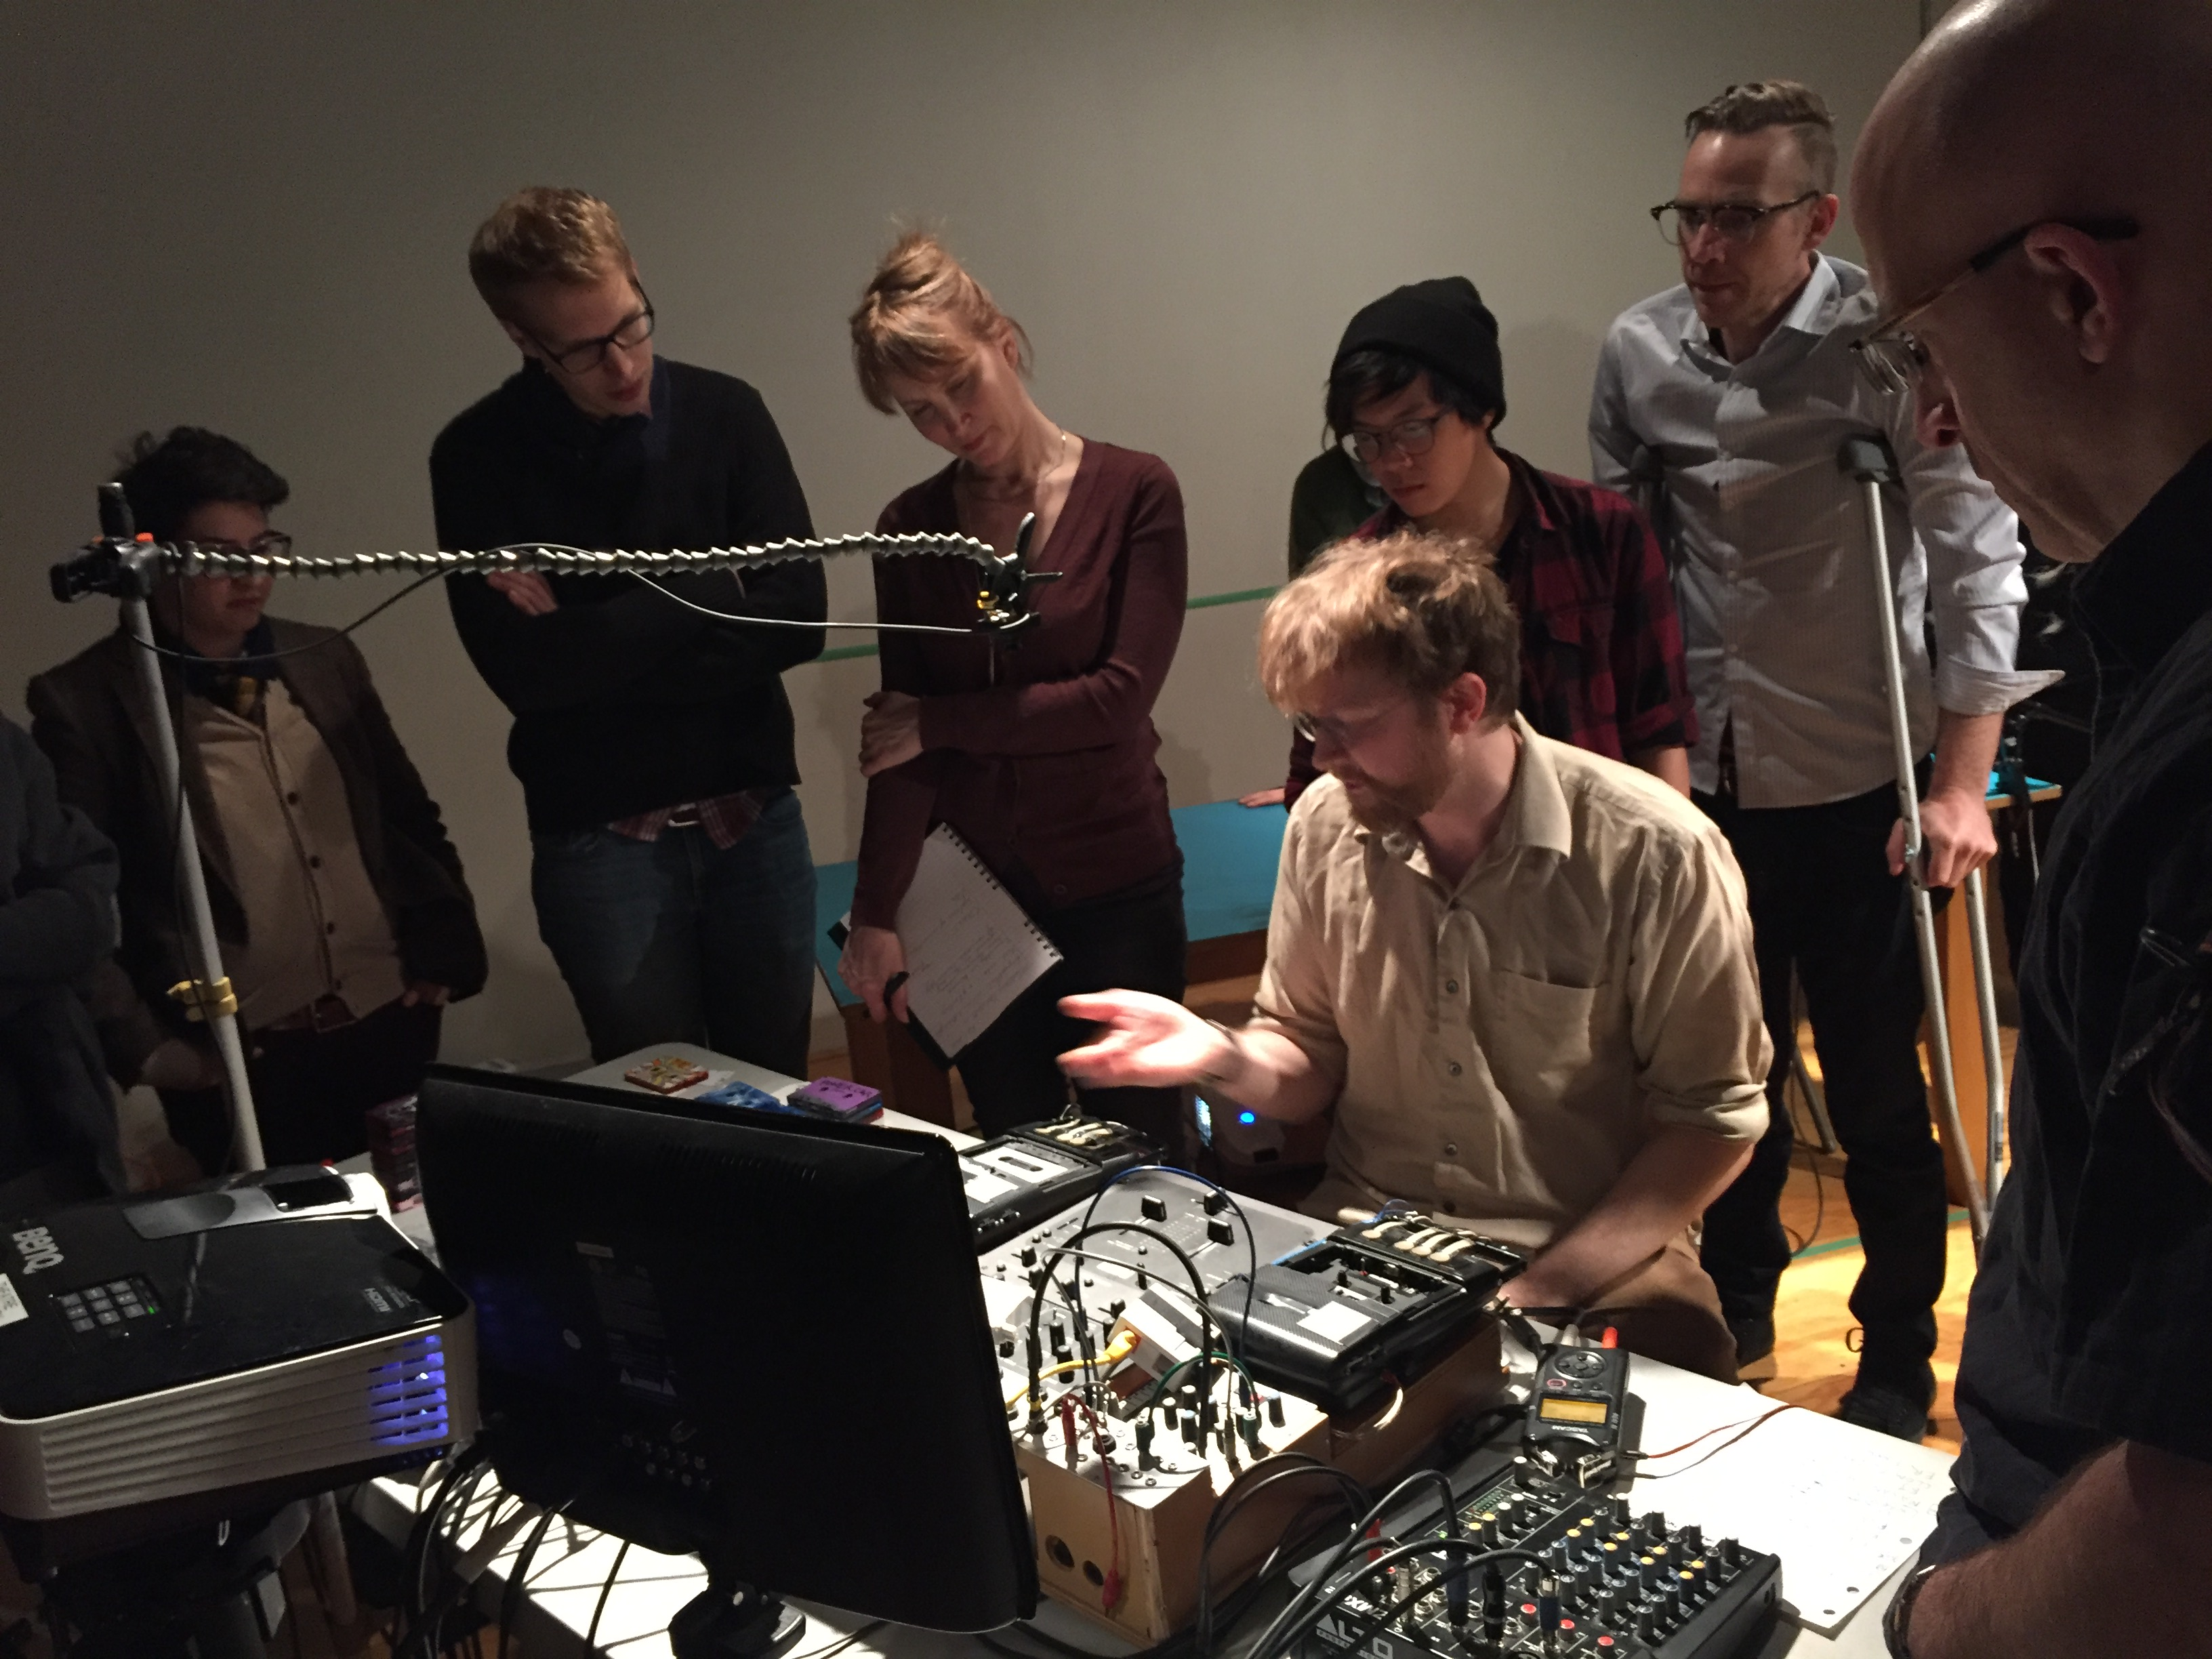 G. Lucas Crane showcasing his elaborate analog sound rig at the Decoder 2017 workshop